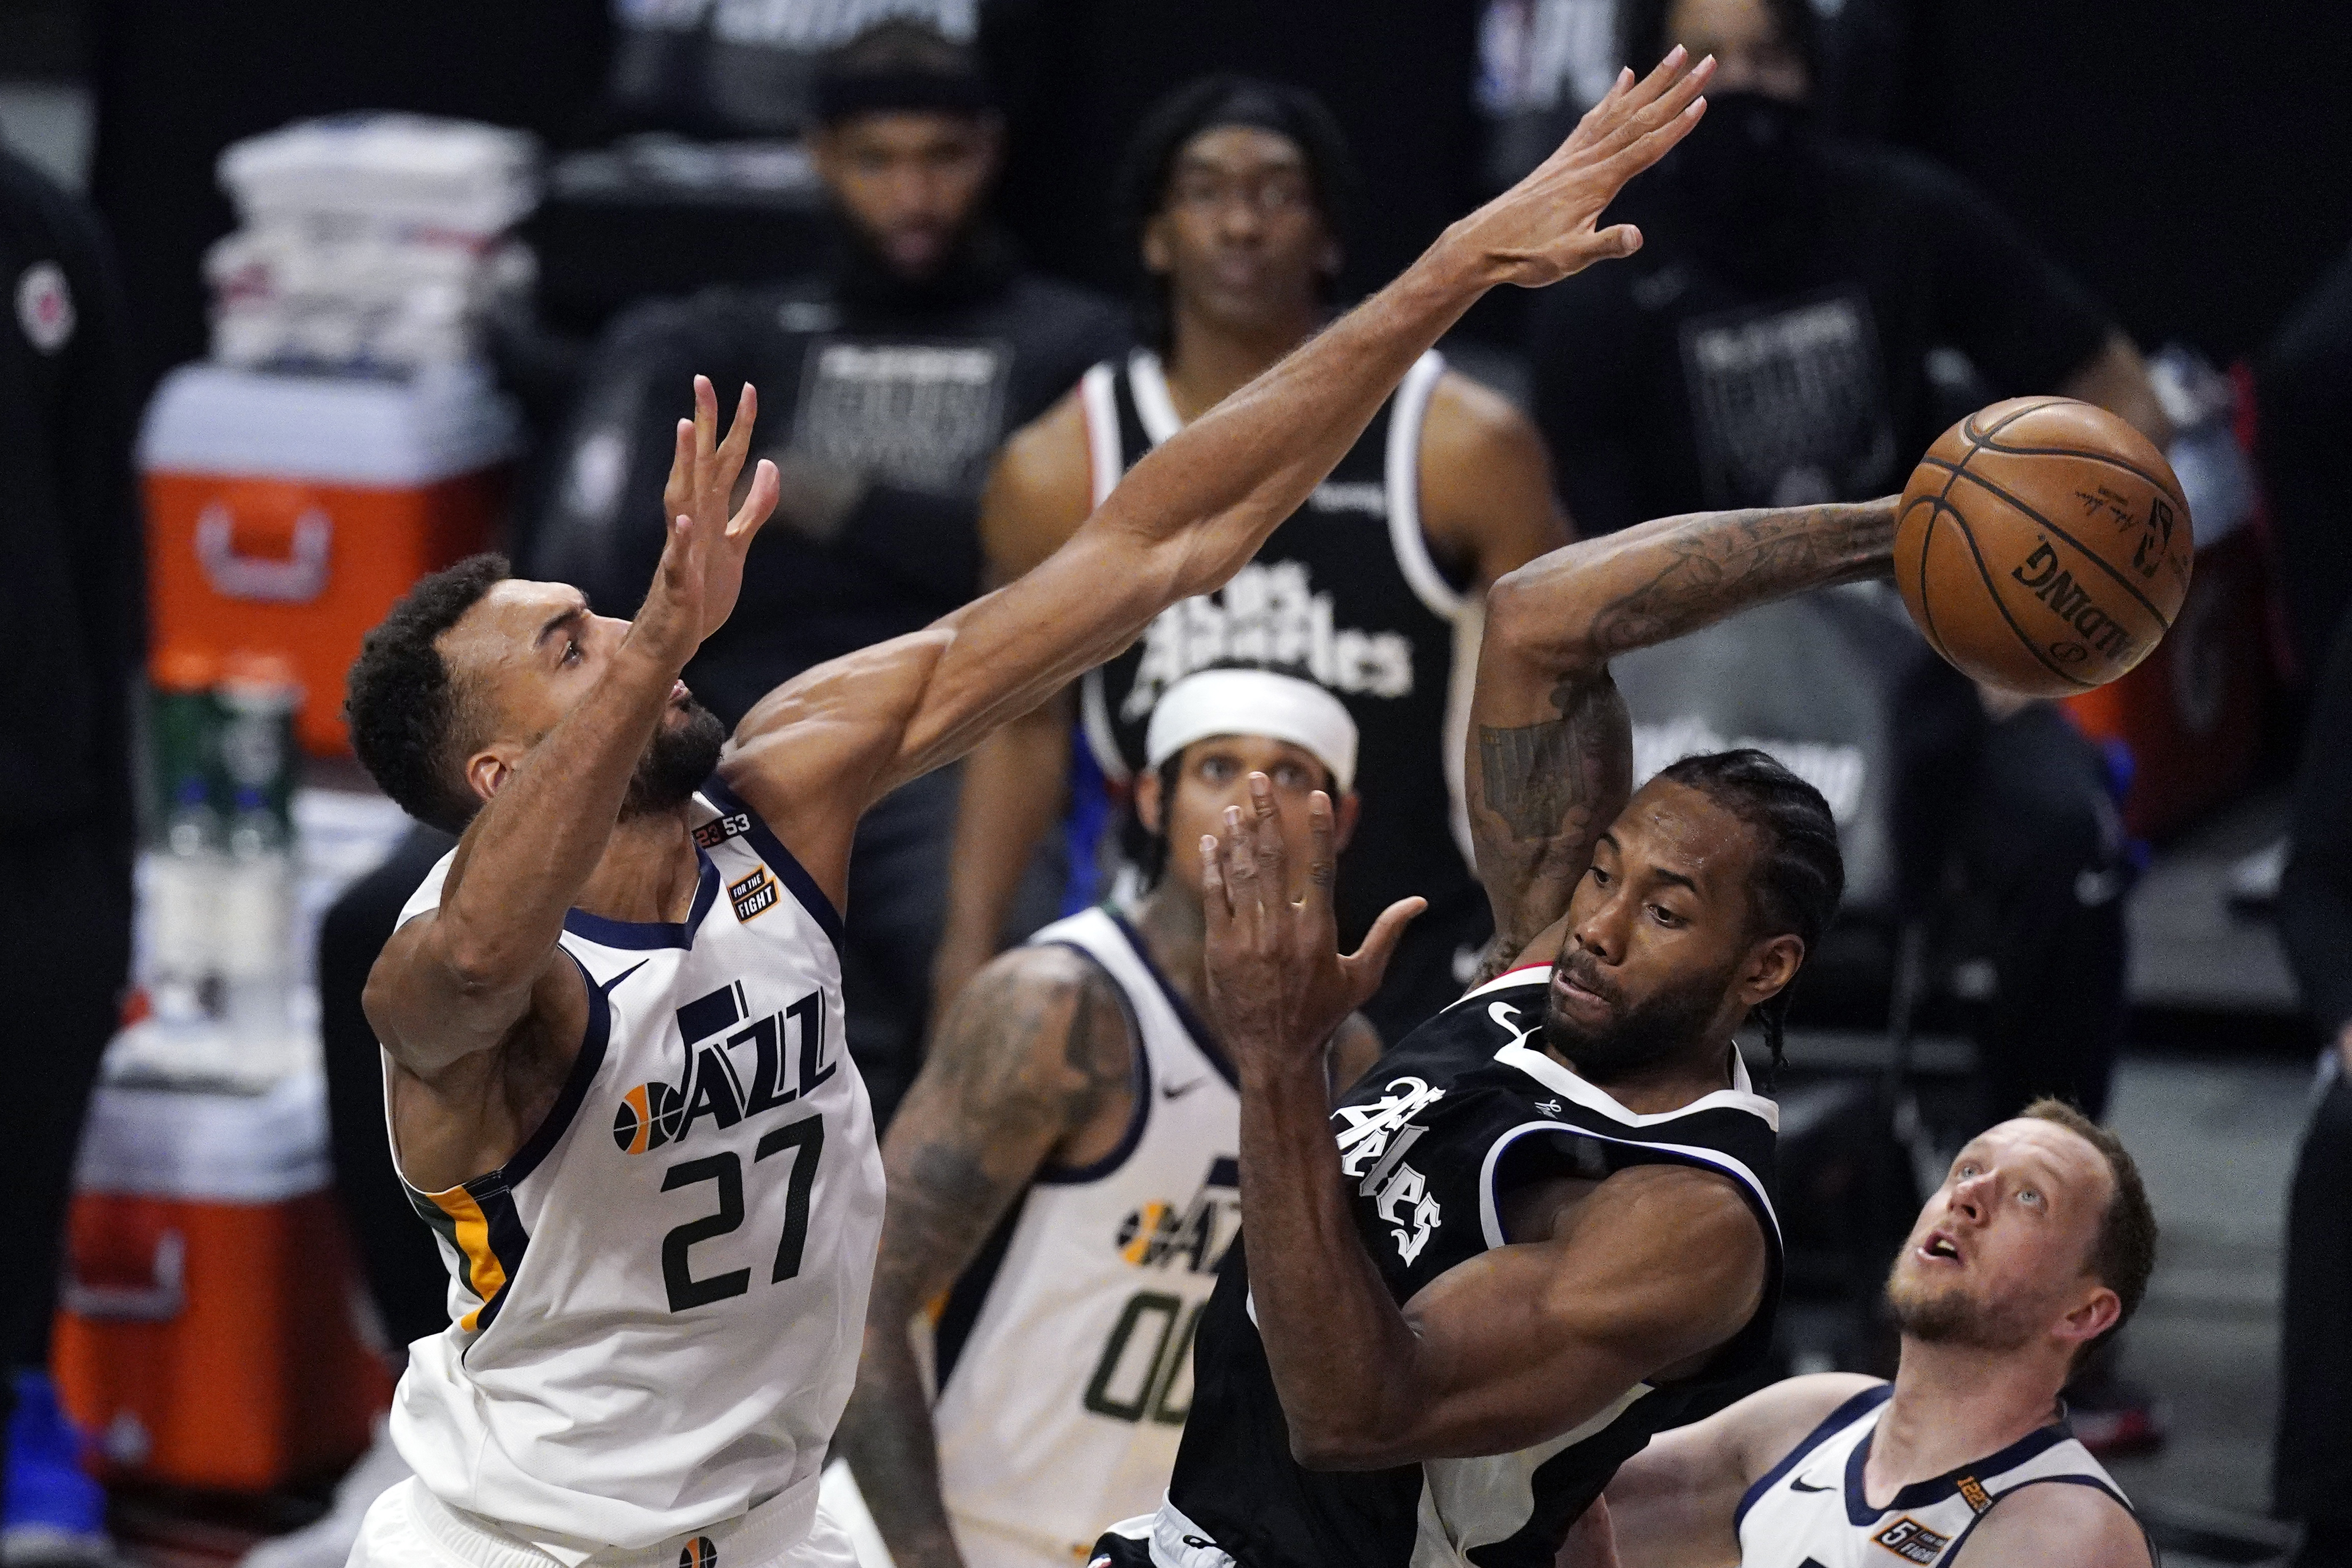 Los Angeles Clippers forward Kawhi Leonard passes the ball as Utah Jazz center Rudy Gobert defends in Game 3 of their playoff series.